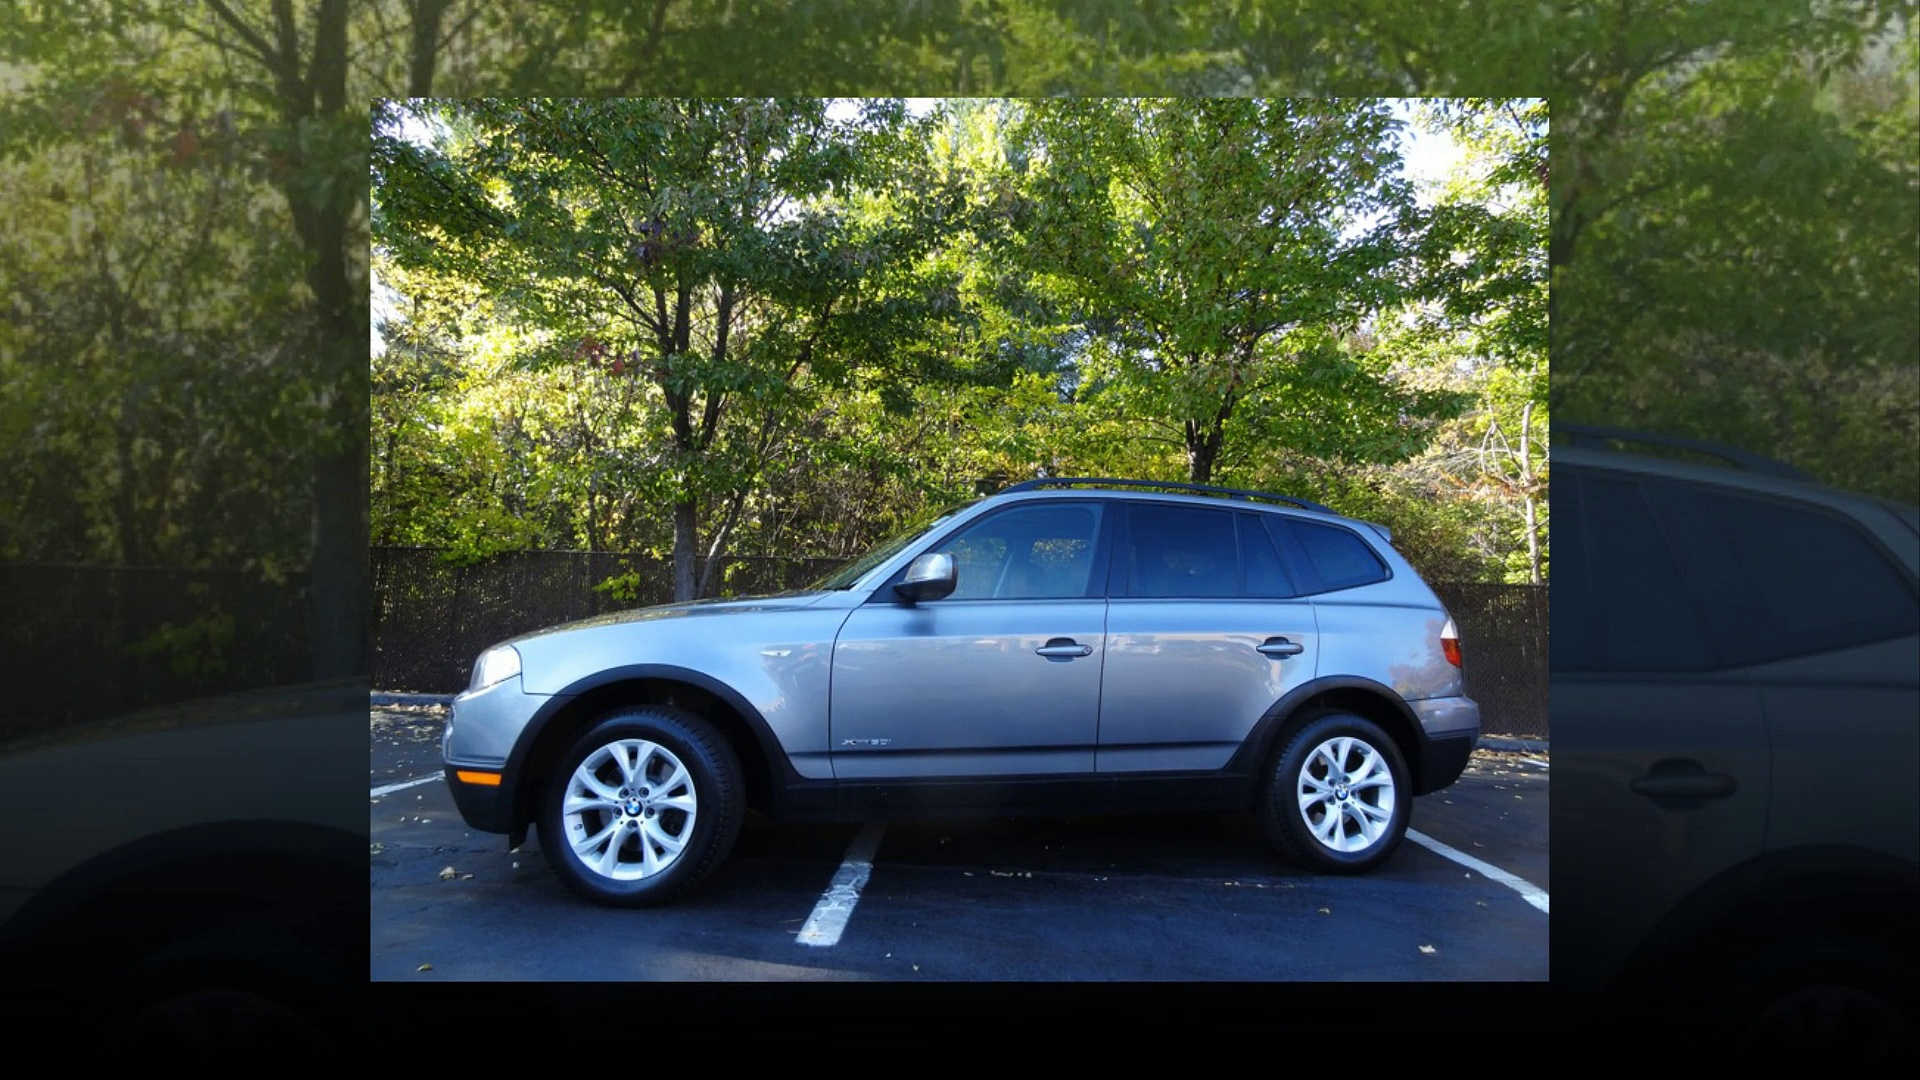 2010 BMW X3, For Sale, Foreign Motorcars Inc, Quincy MA, BMW Service, BMW Repair, BMW Sales